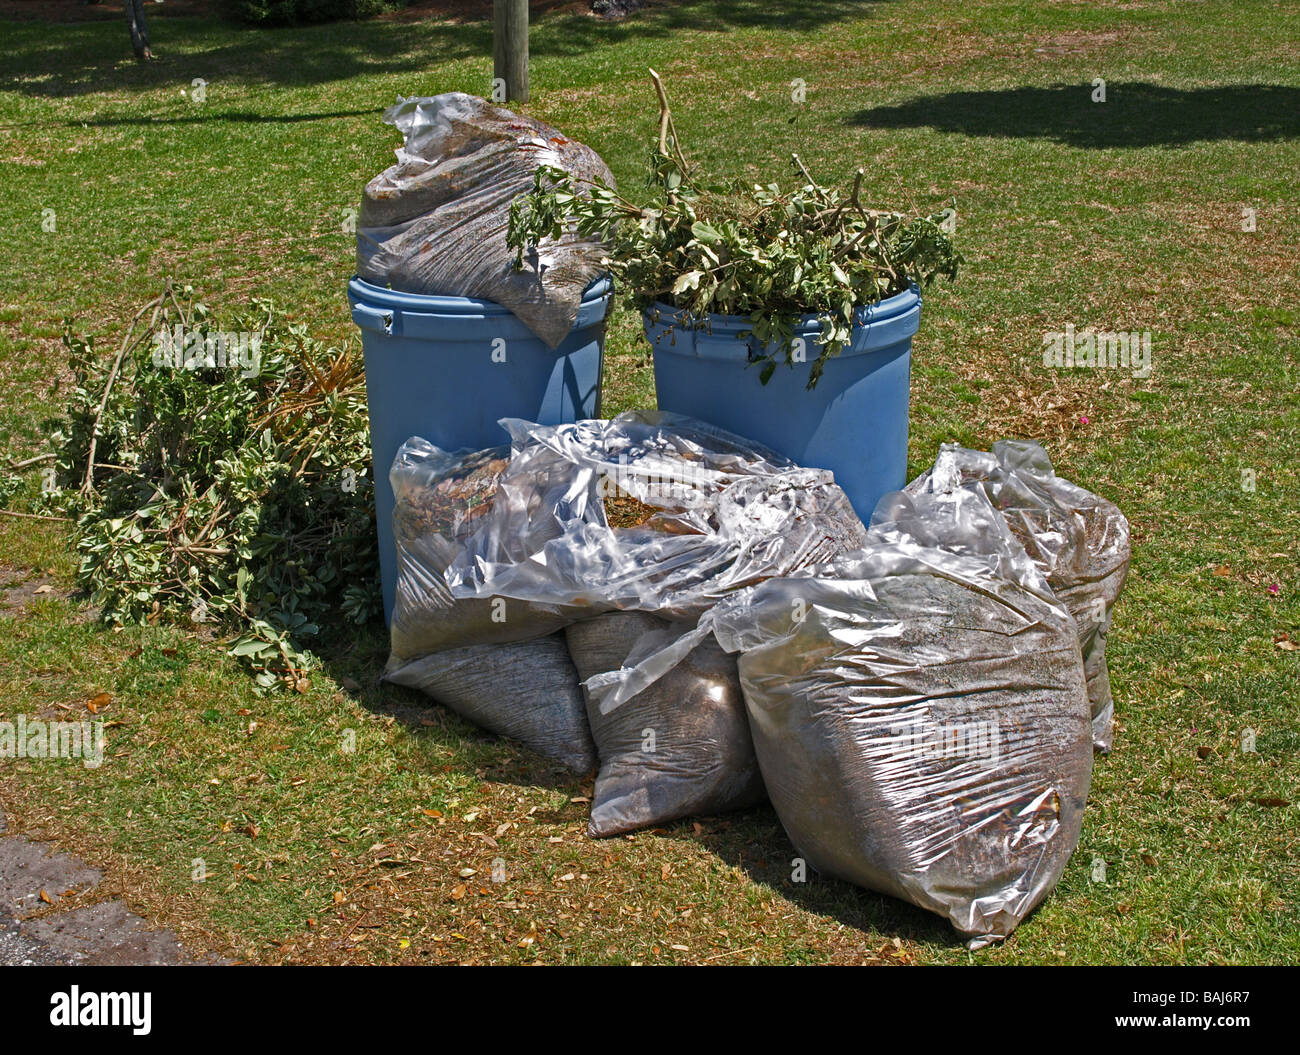 leaves branches clippings and yard waste in clear bags and blue barrels awaiting pickup against a green yard lawn - Stock Image